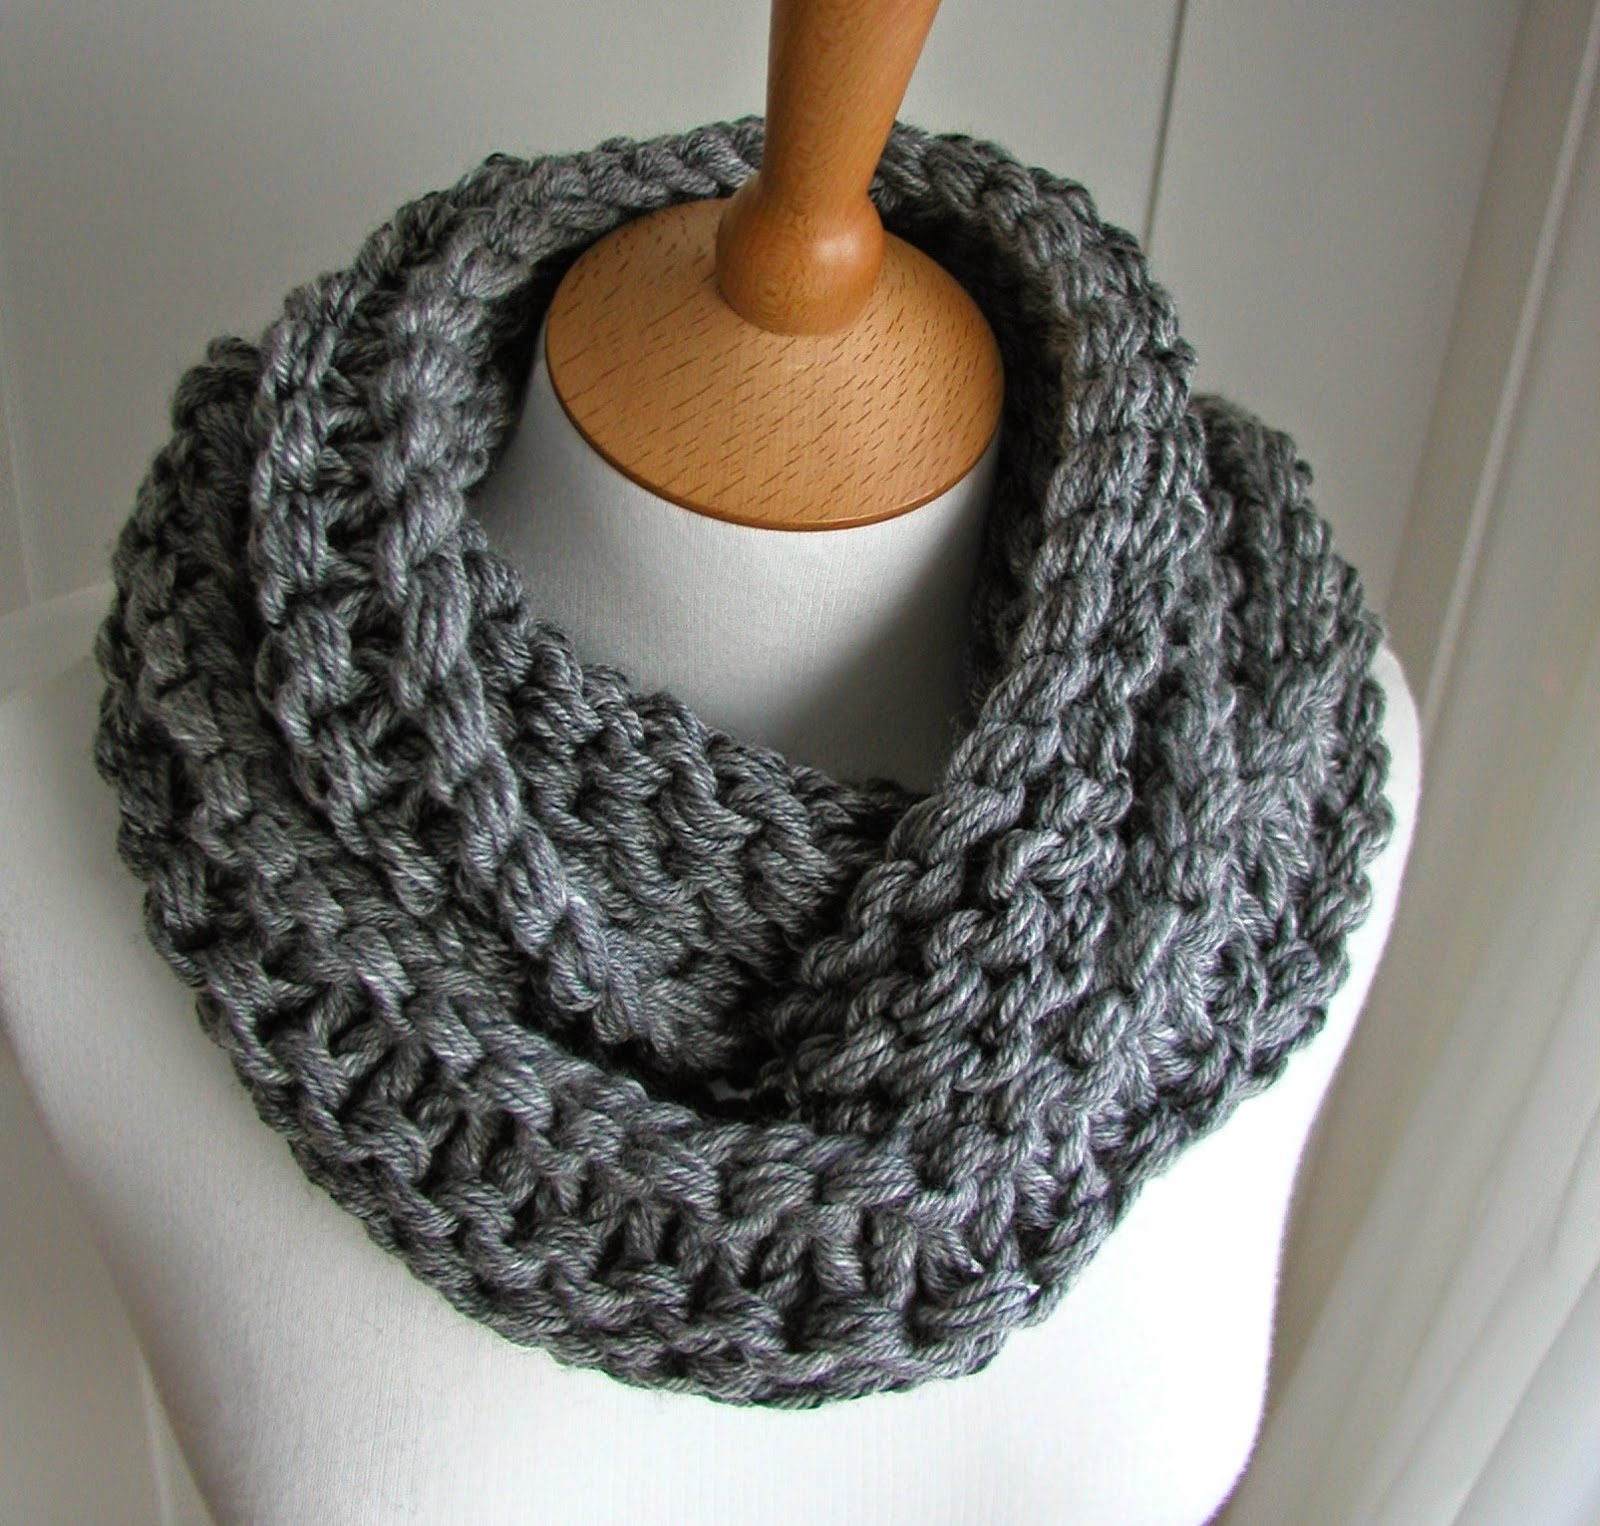 Knitting Patterns For Circular Shawls : Hand Knitted Things: Circular Scarf Free Pattern